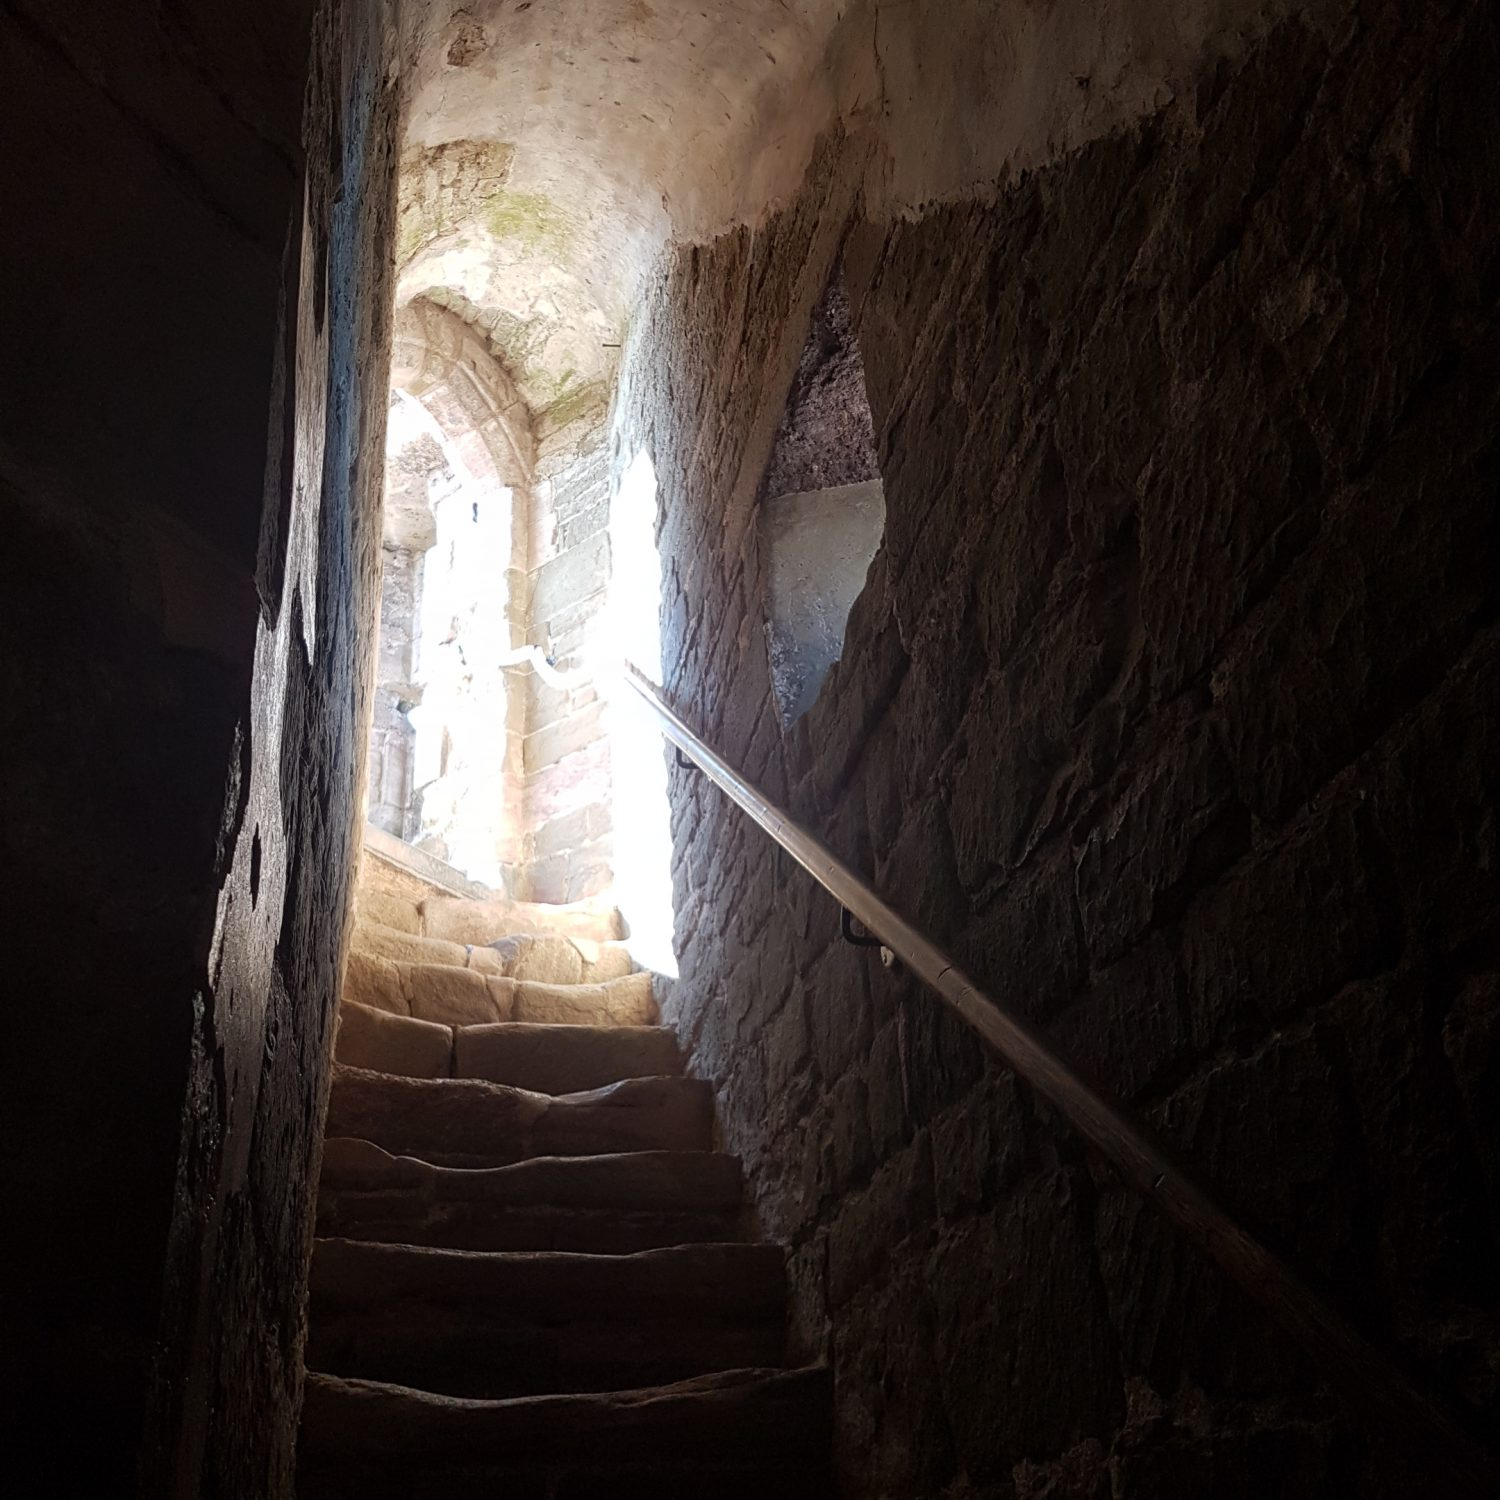 stair way leading to daylight